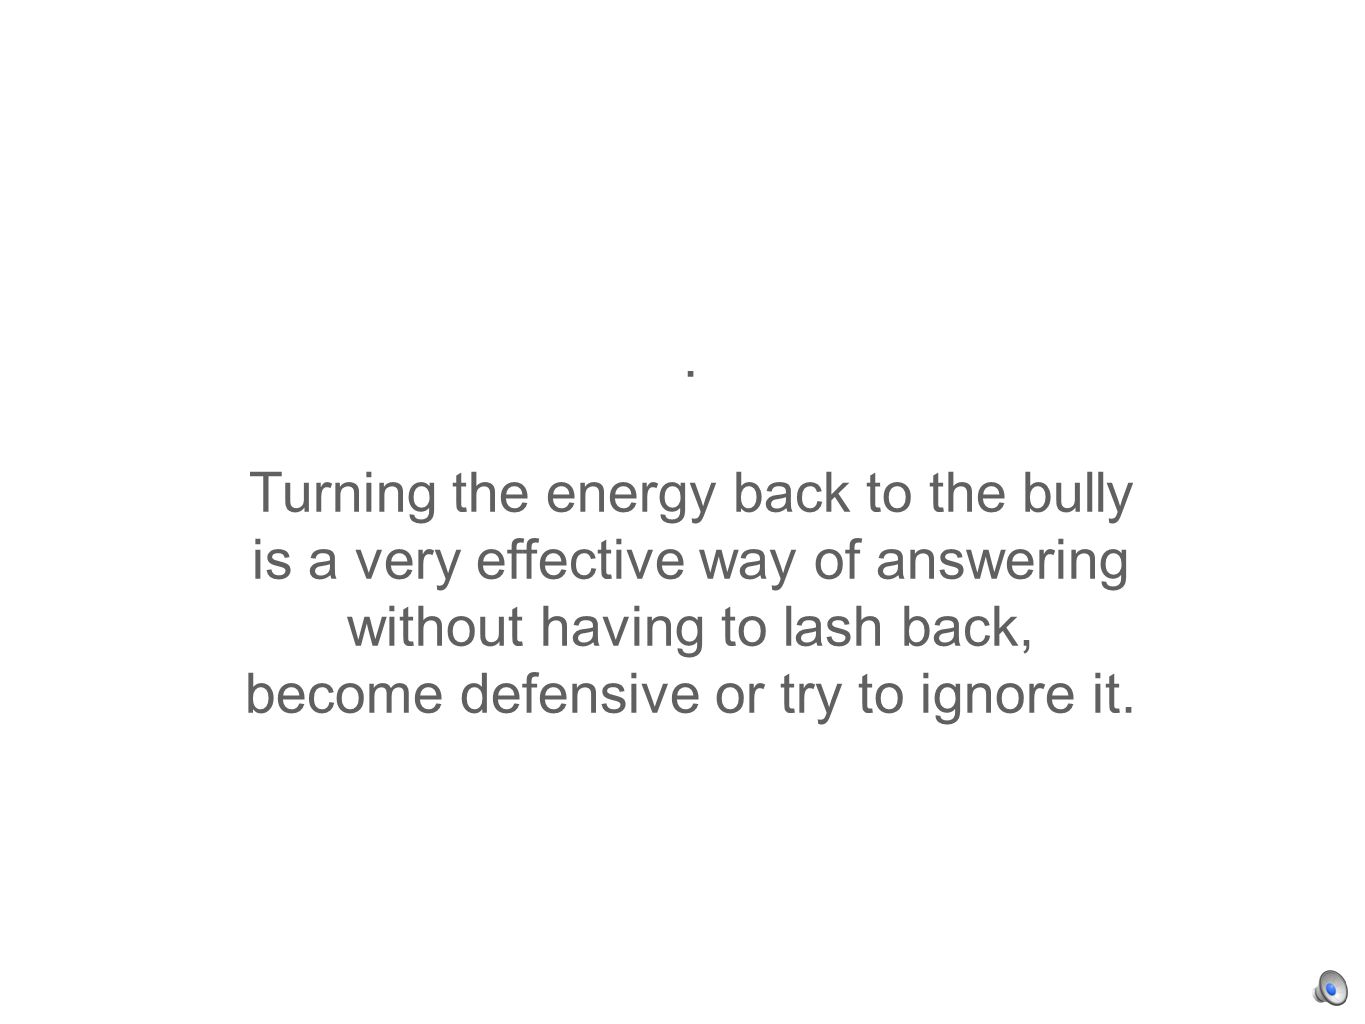 . Turning the energy back to the bully is a very effective way of answering without having to lash back, become defensive or try to ignore it.